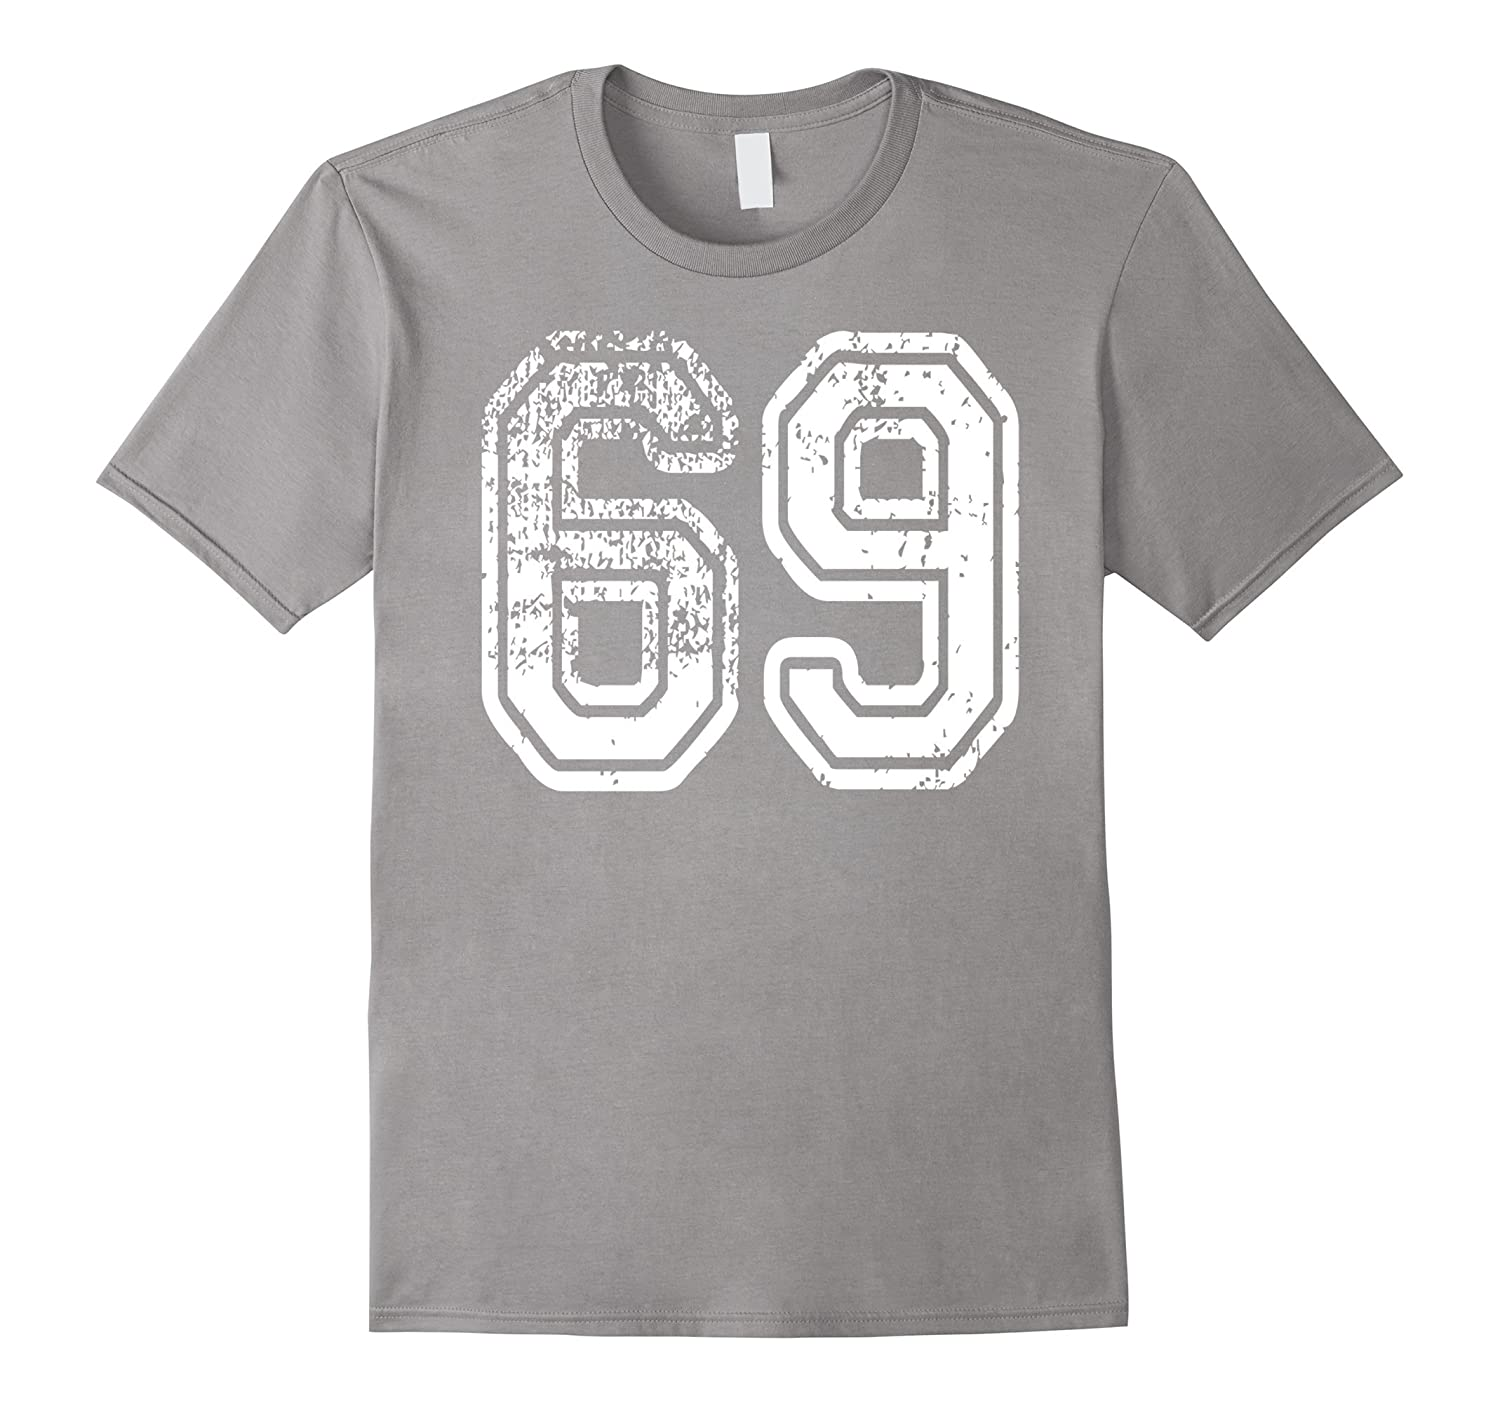 #69 Grungy Numbered Sports Team T-Shirts printed both sides-T-Shirt